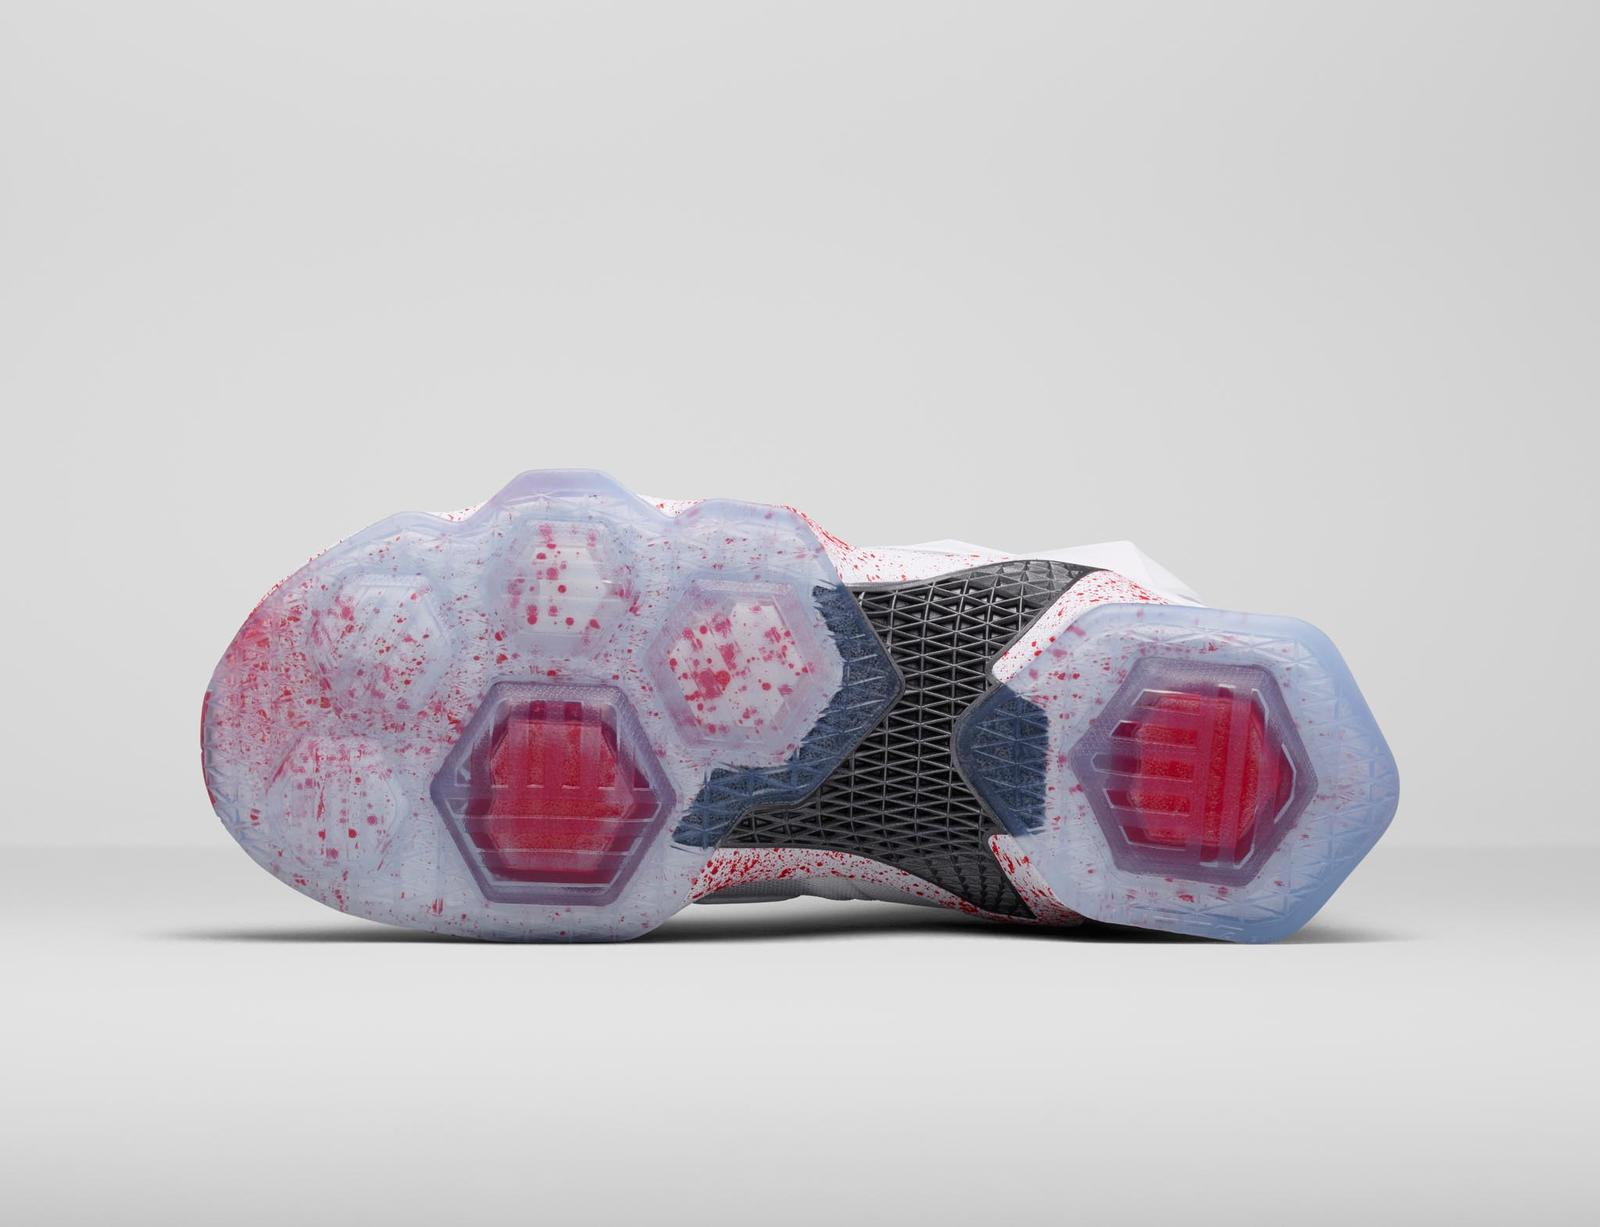 959af935a3d The shoe is set to drop on Friday the 13th